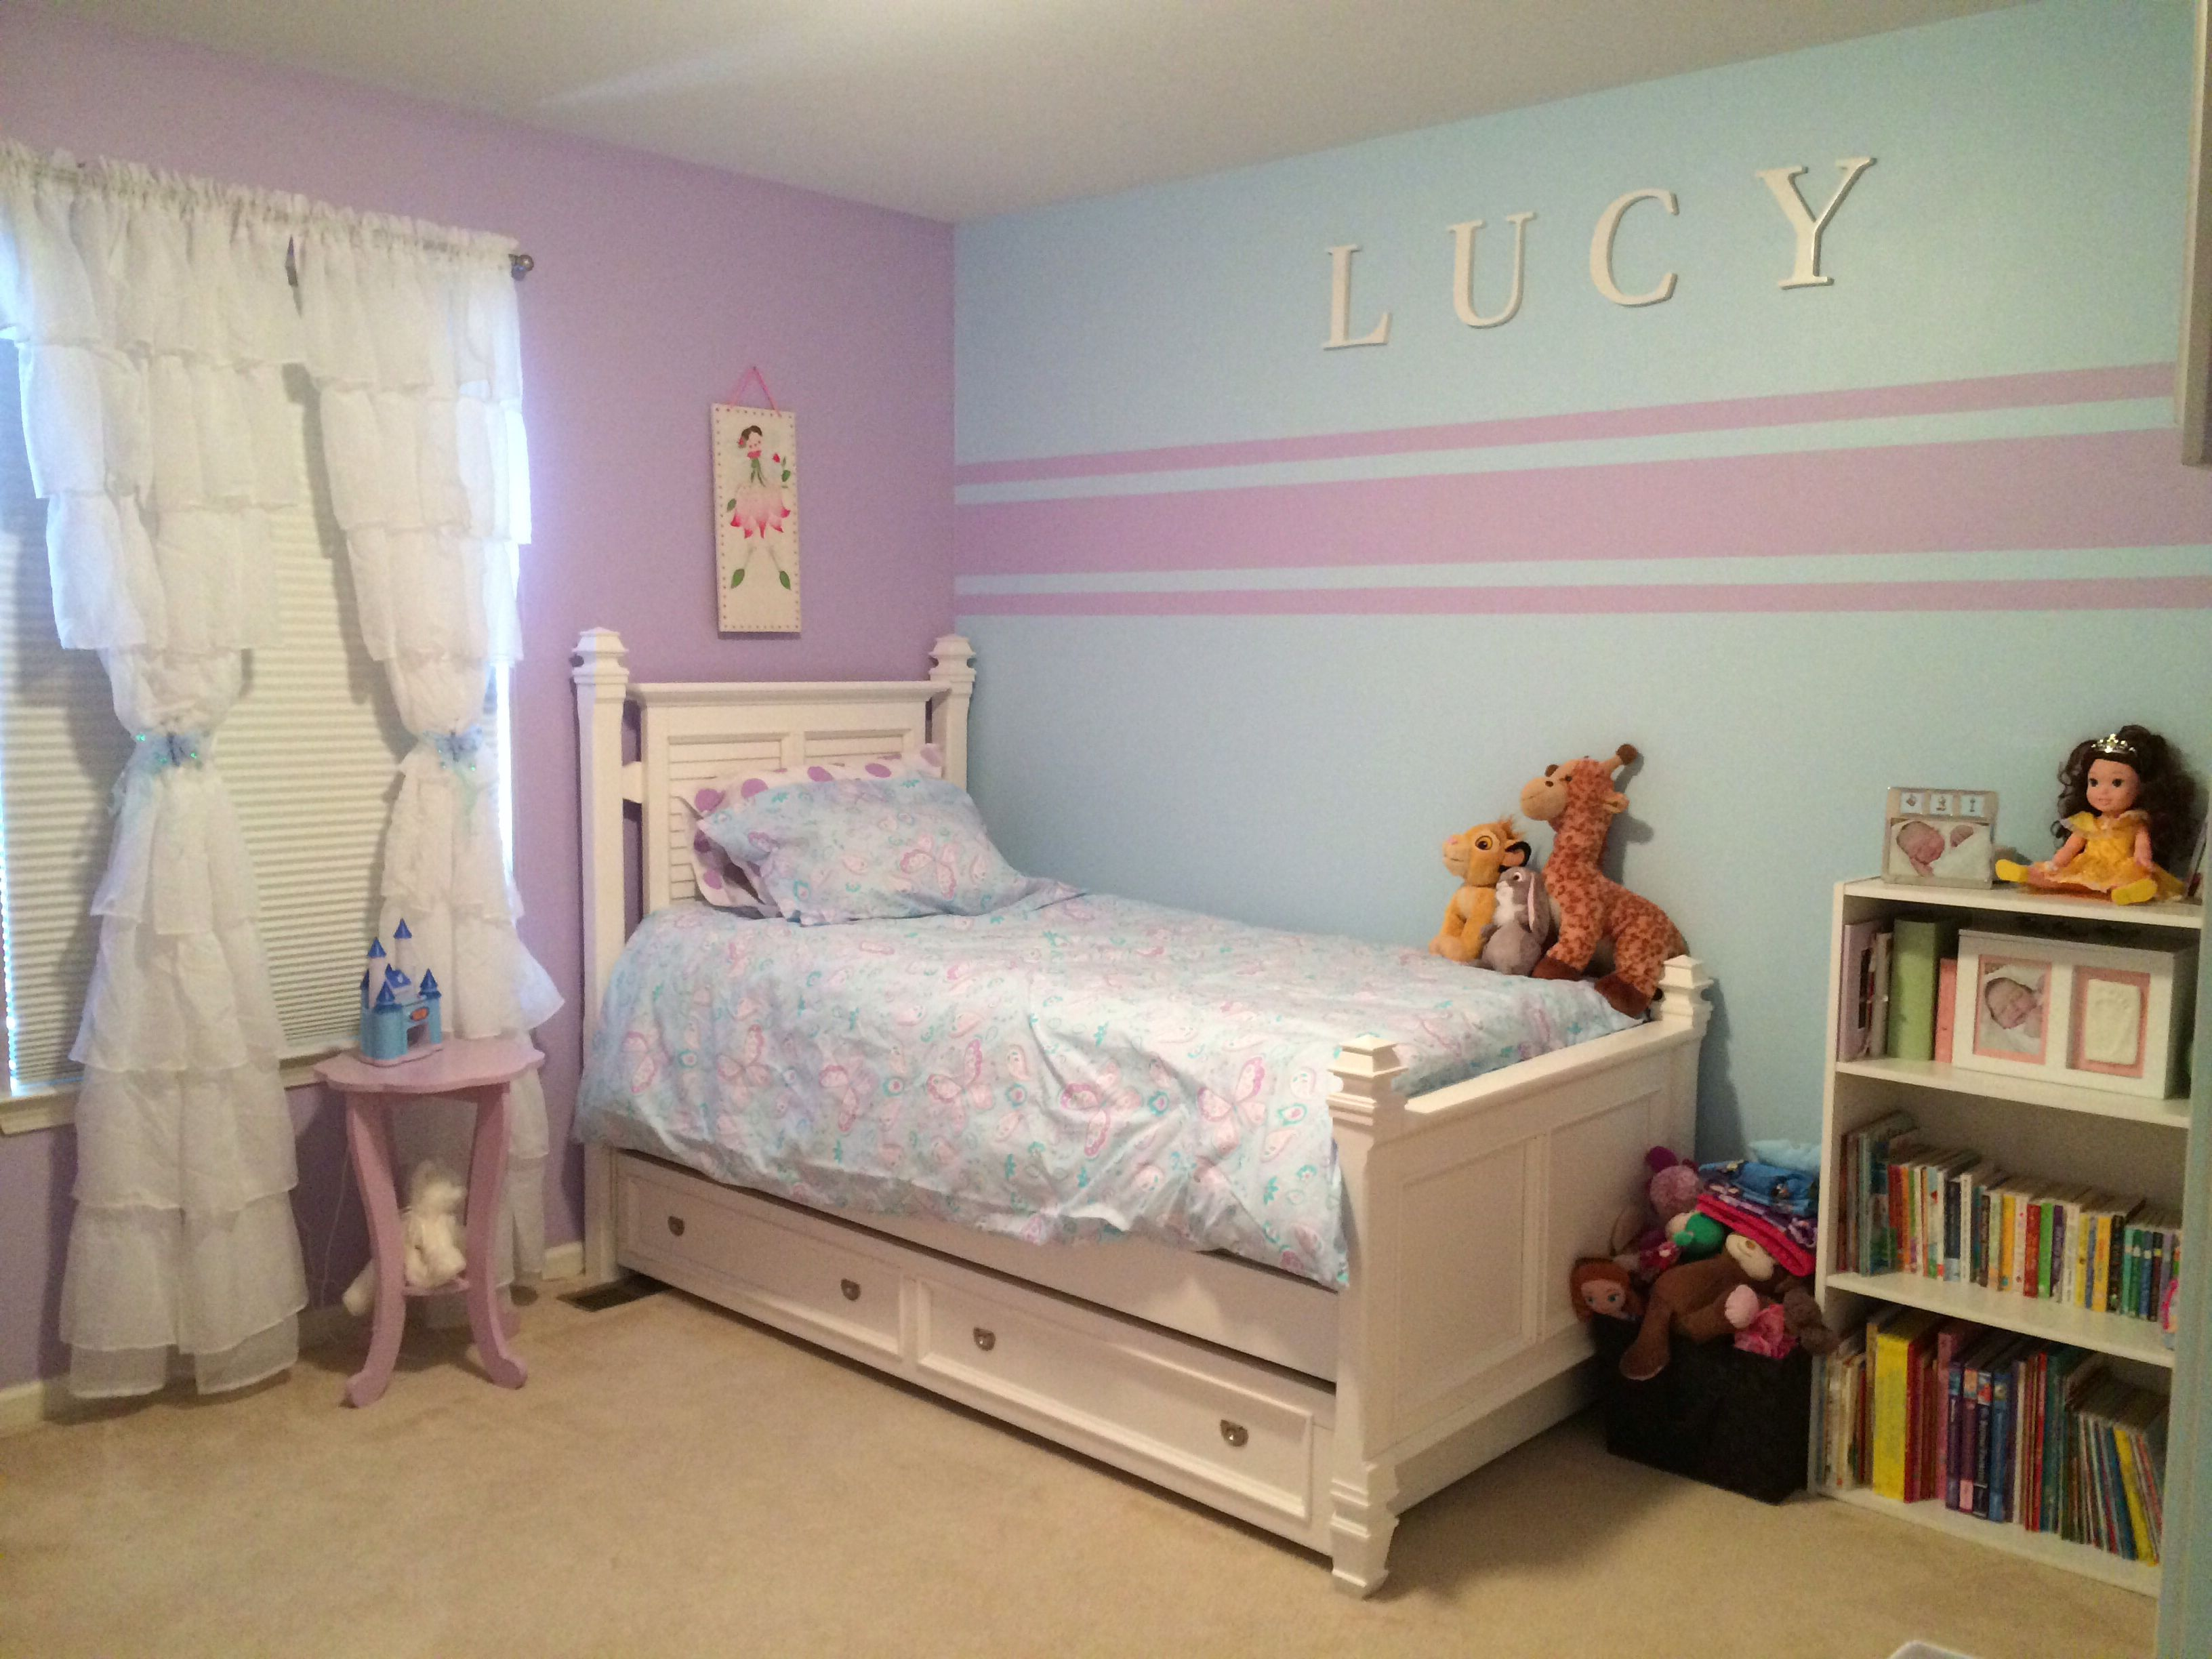 Girls Bedroom Ideas Blue And Purple. Accent wall stripes for little girl room  Blue paint Soar from Sherwin Williams and purple Kristin duvet set